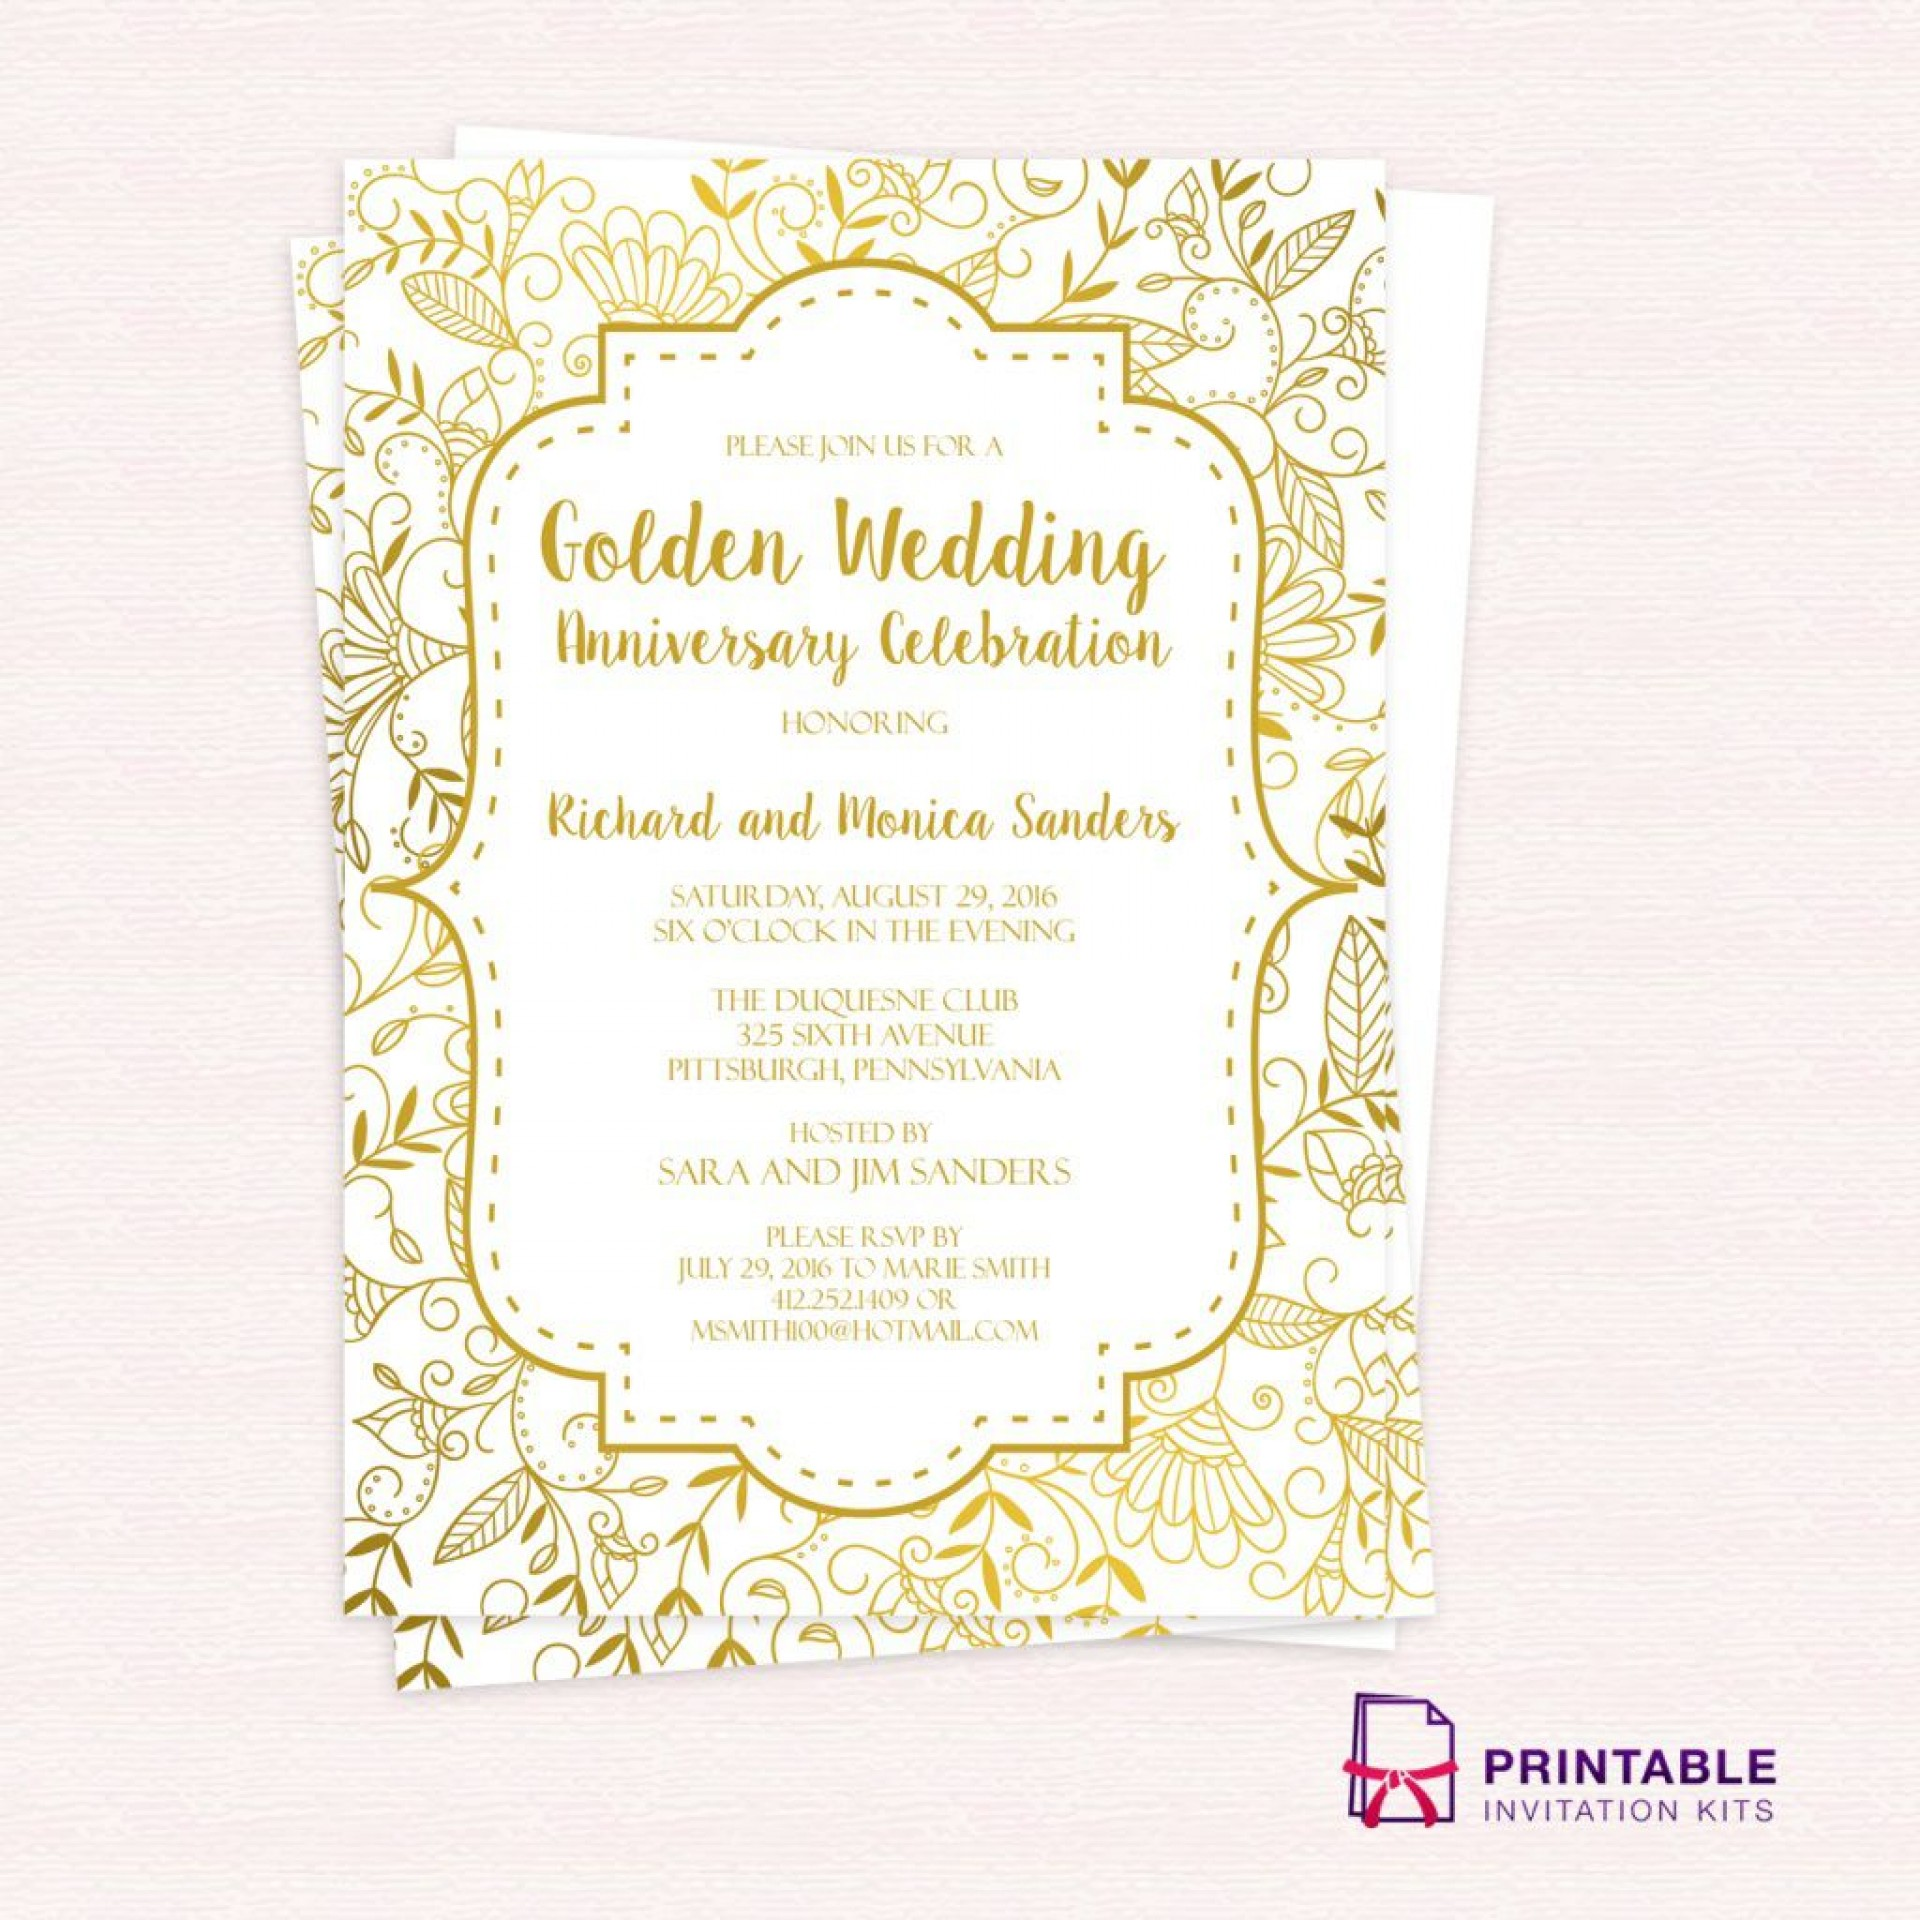 001 Remarkable 50th Anniversary Invitation Template Photo  Templates Wedding Free Download Golden1920